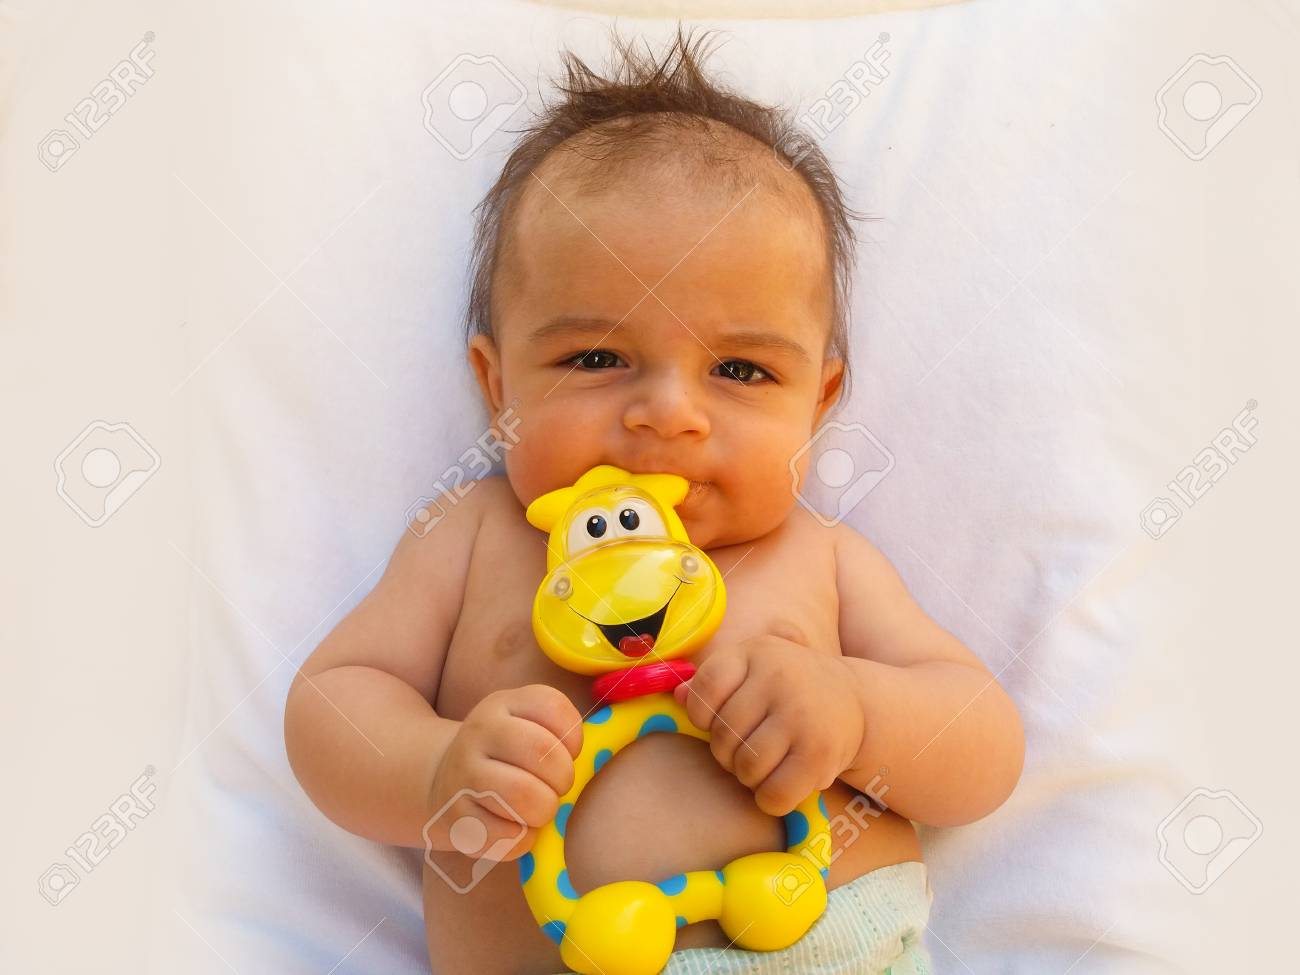 2ccce83d9e7 3 months old baby boy playing with teething toy Stock Photo - 81837402